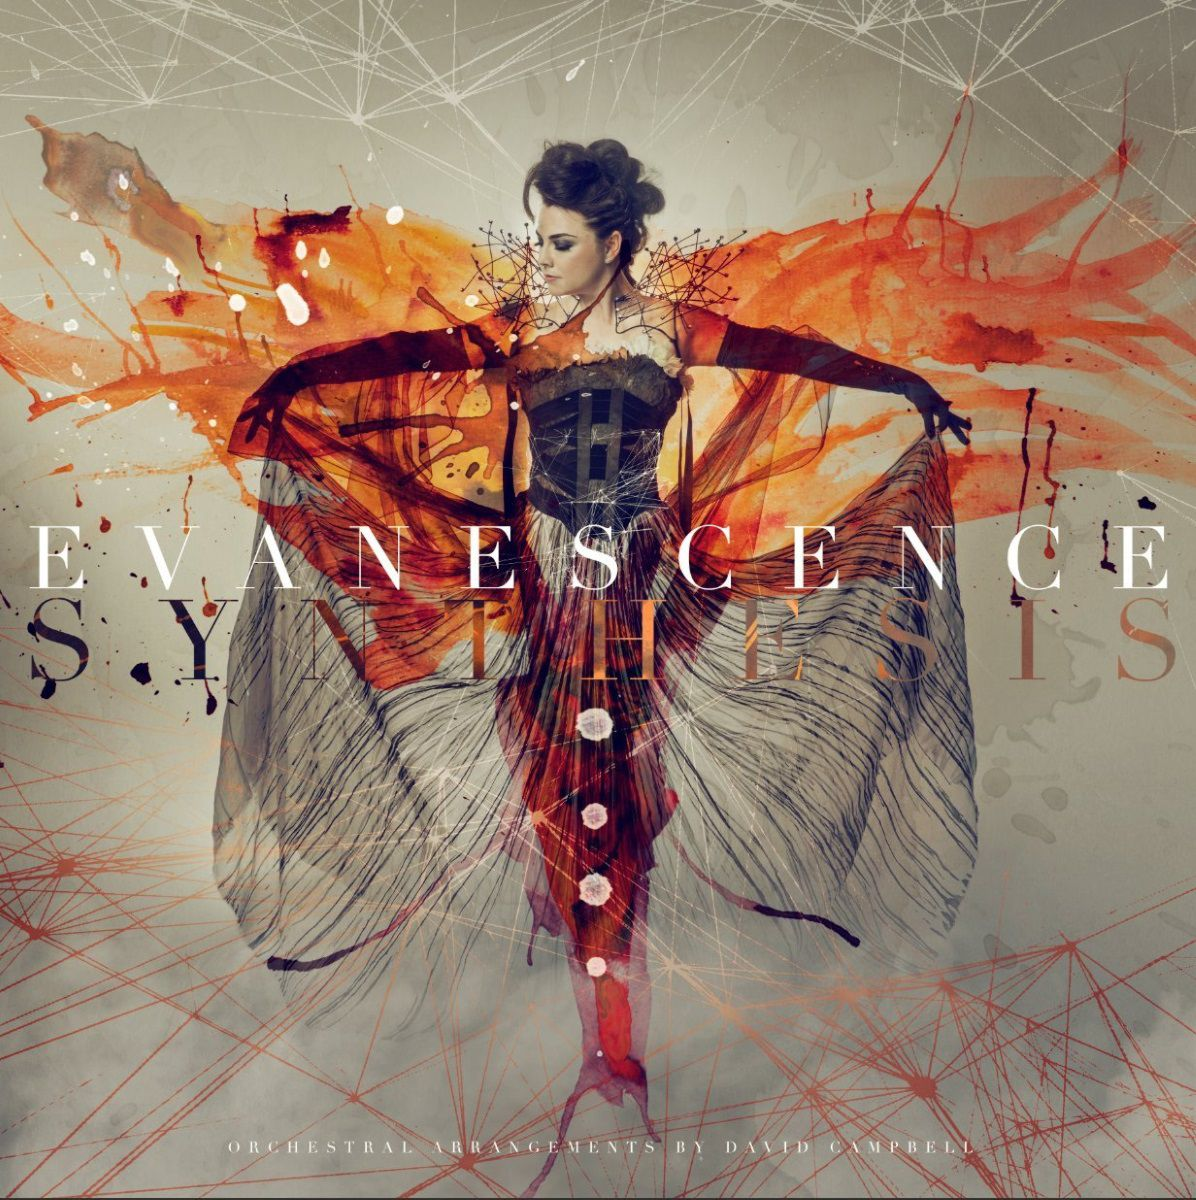 Evanescence – Synthesis (2 LP + CD) барбра стрейзанд barbra streisand partners 2 lp cd